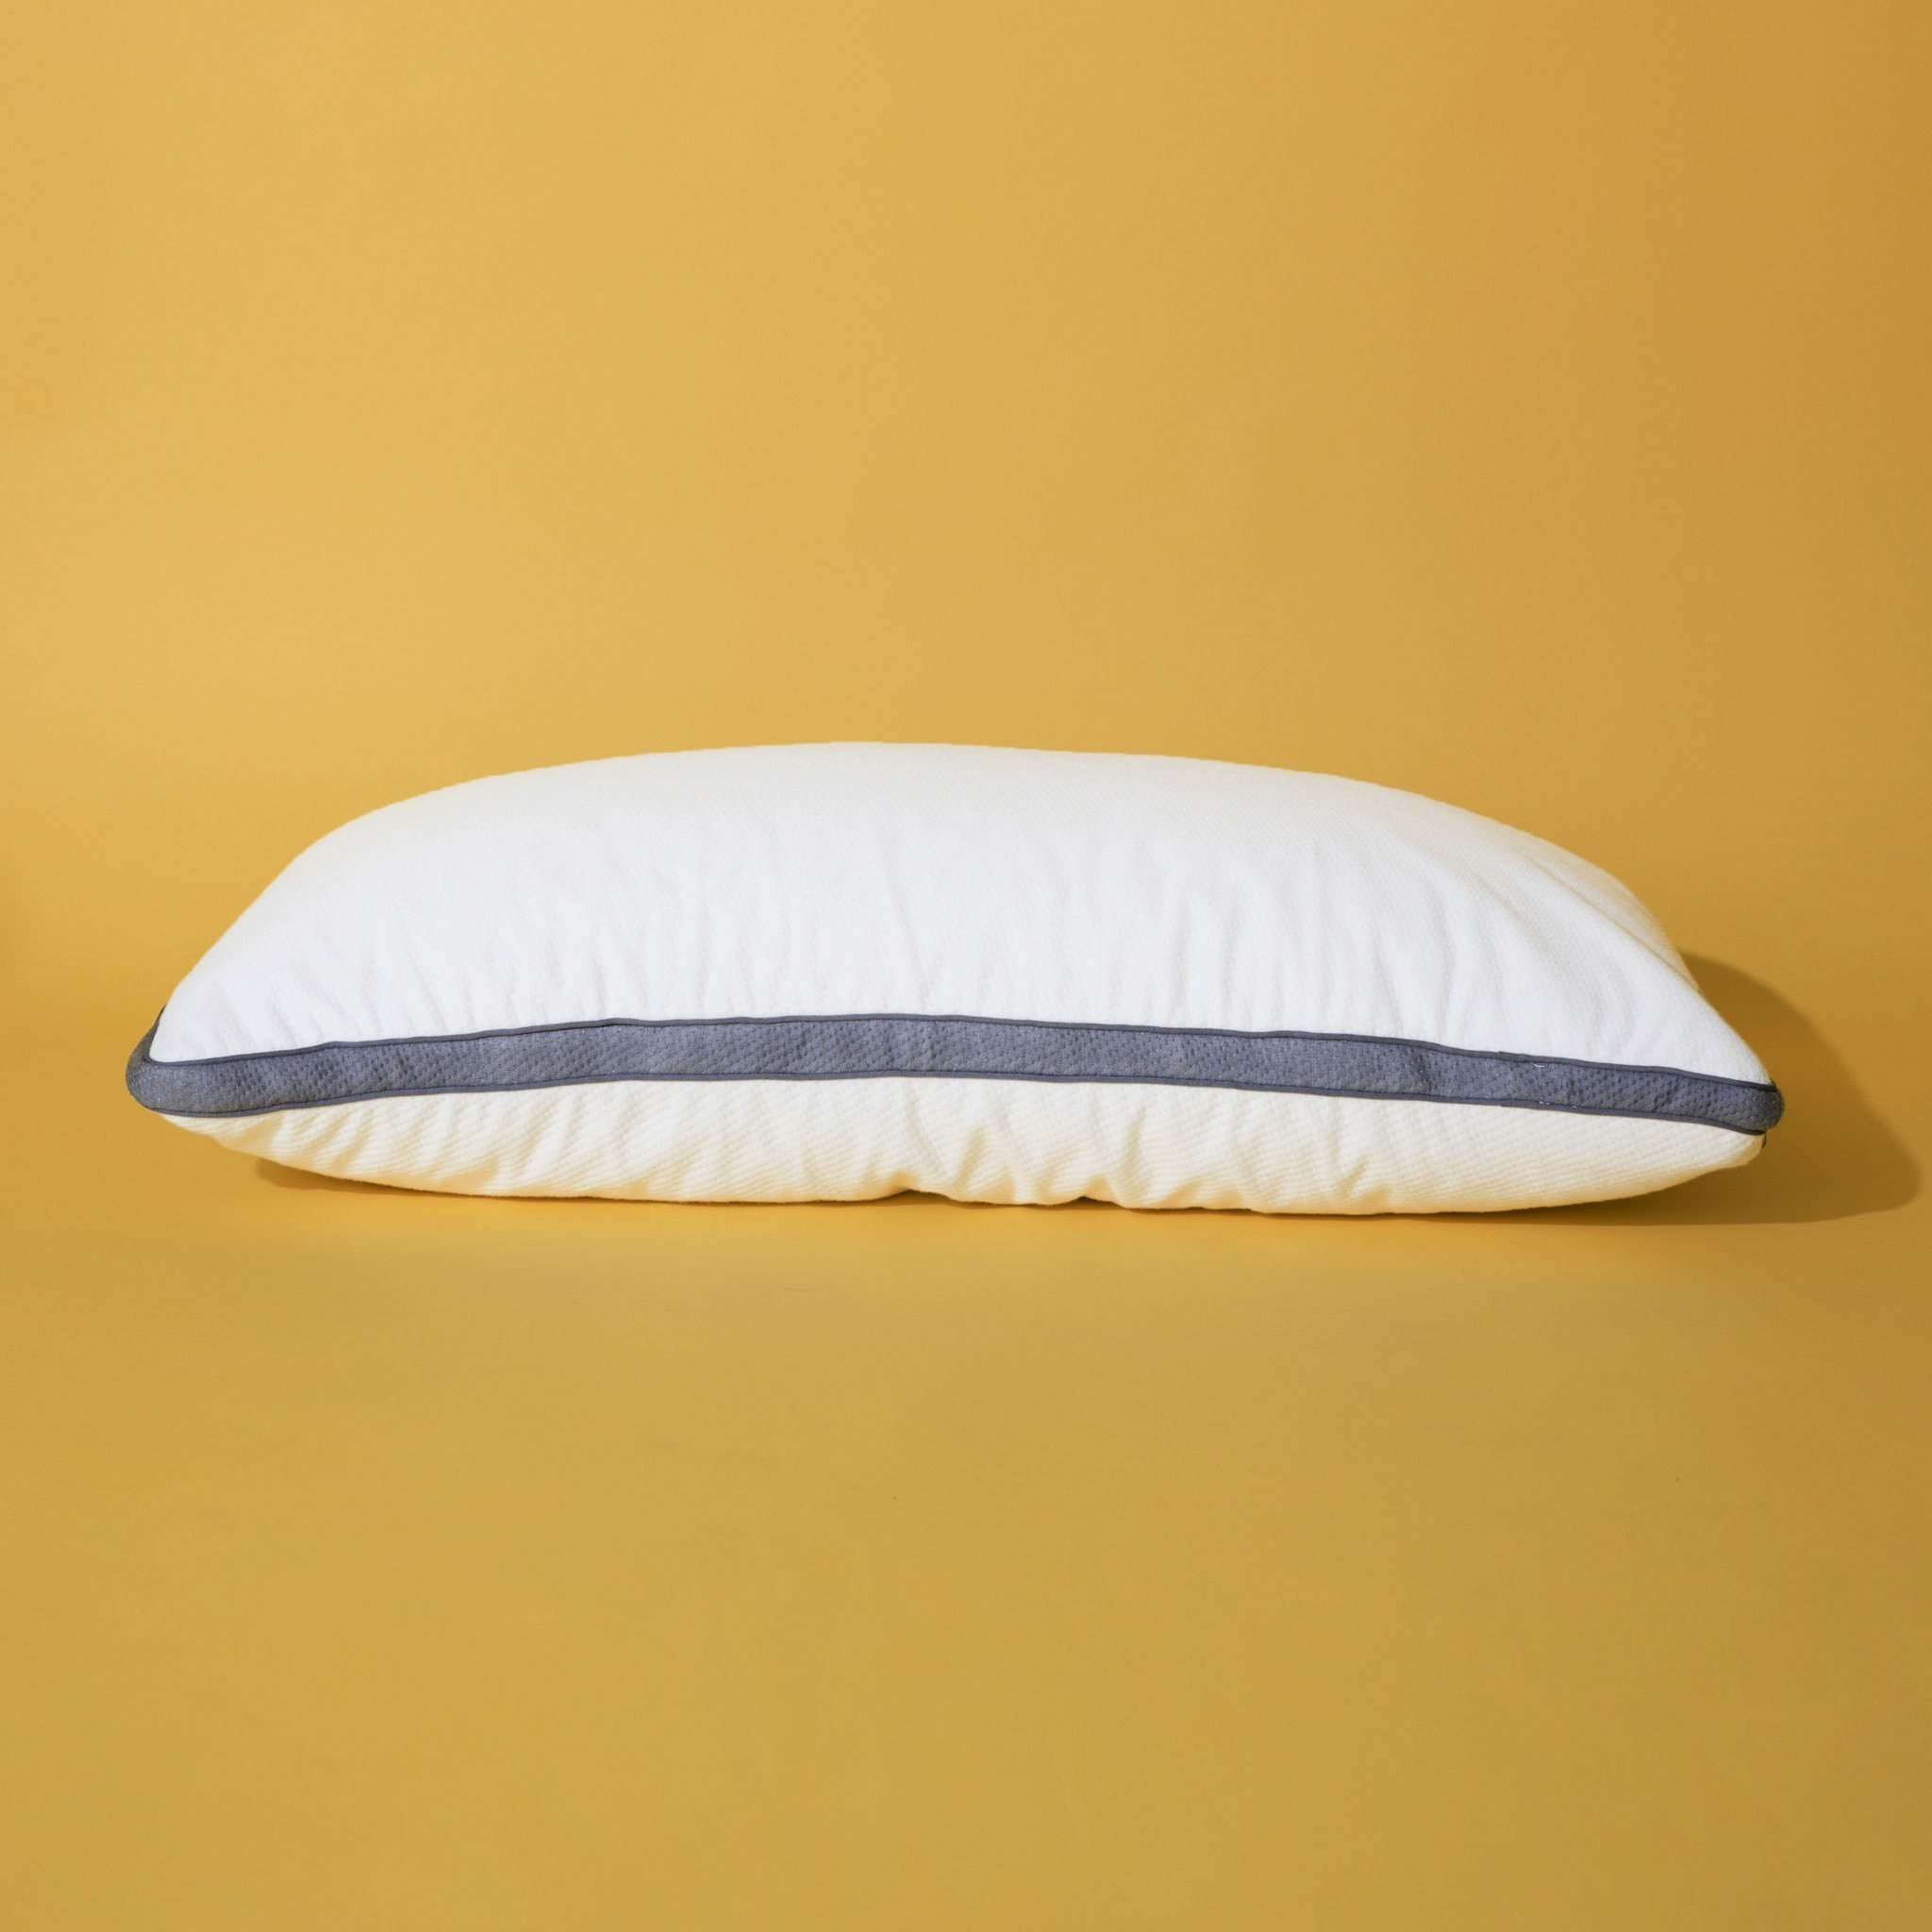 keep your pillow fresh